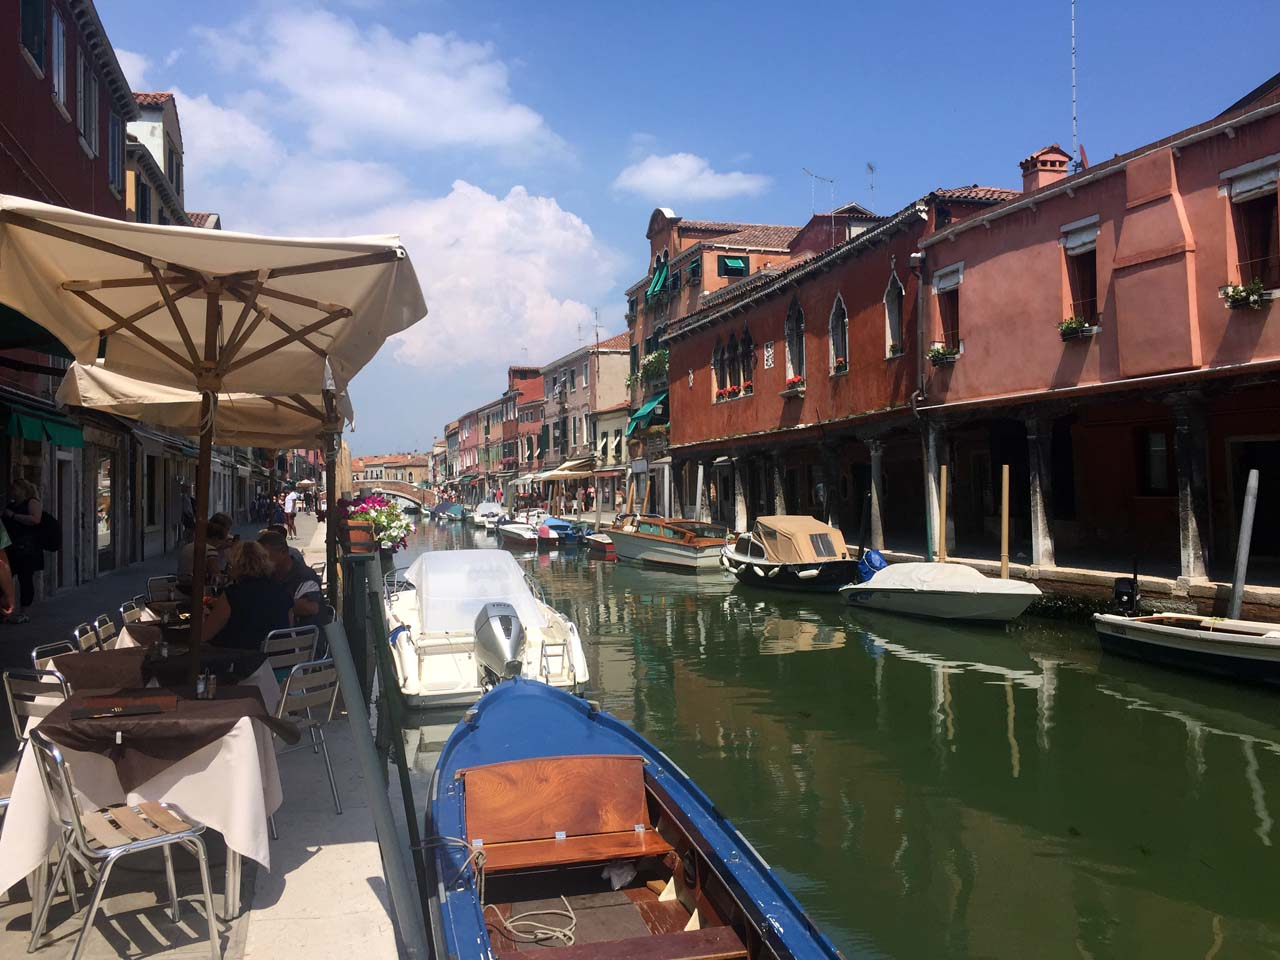 Cafe-lined canals of Murano